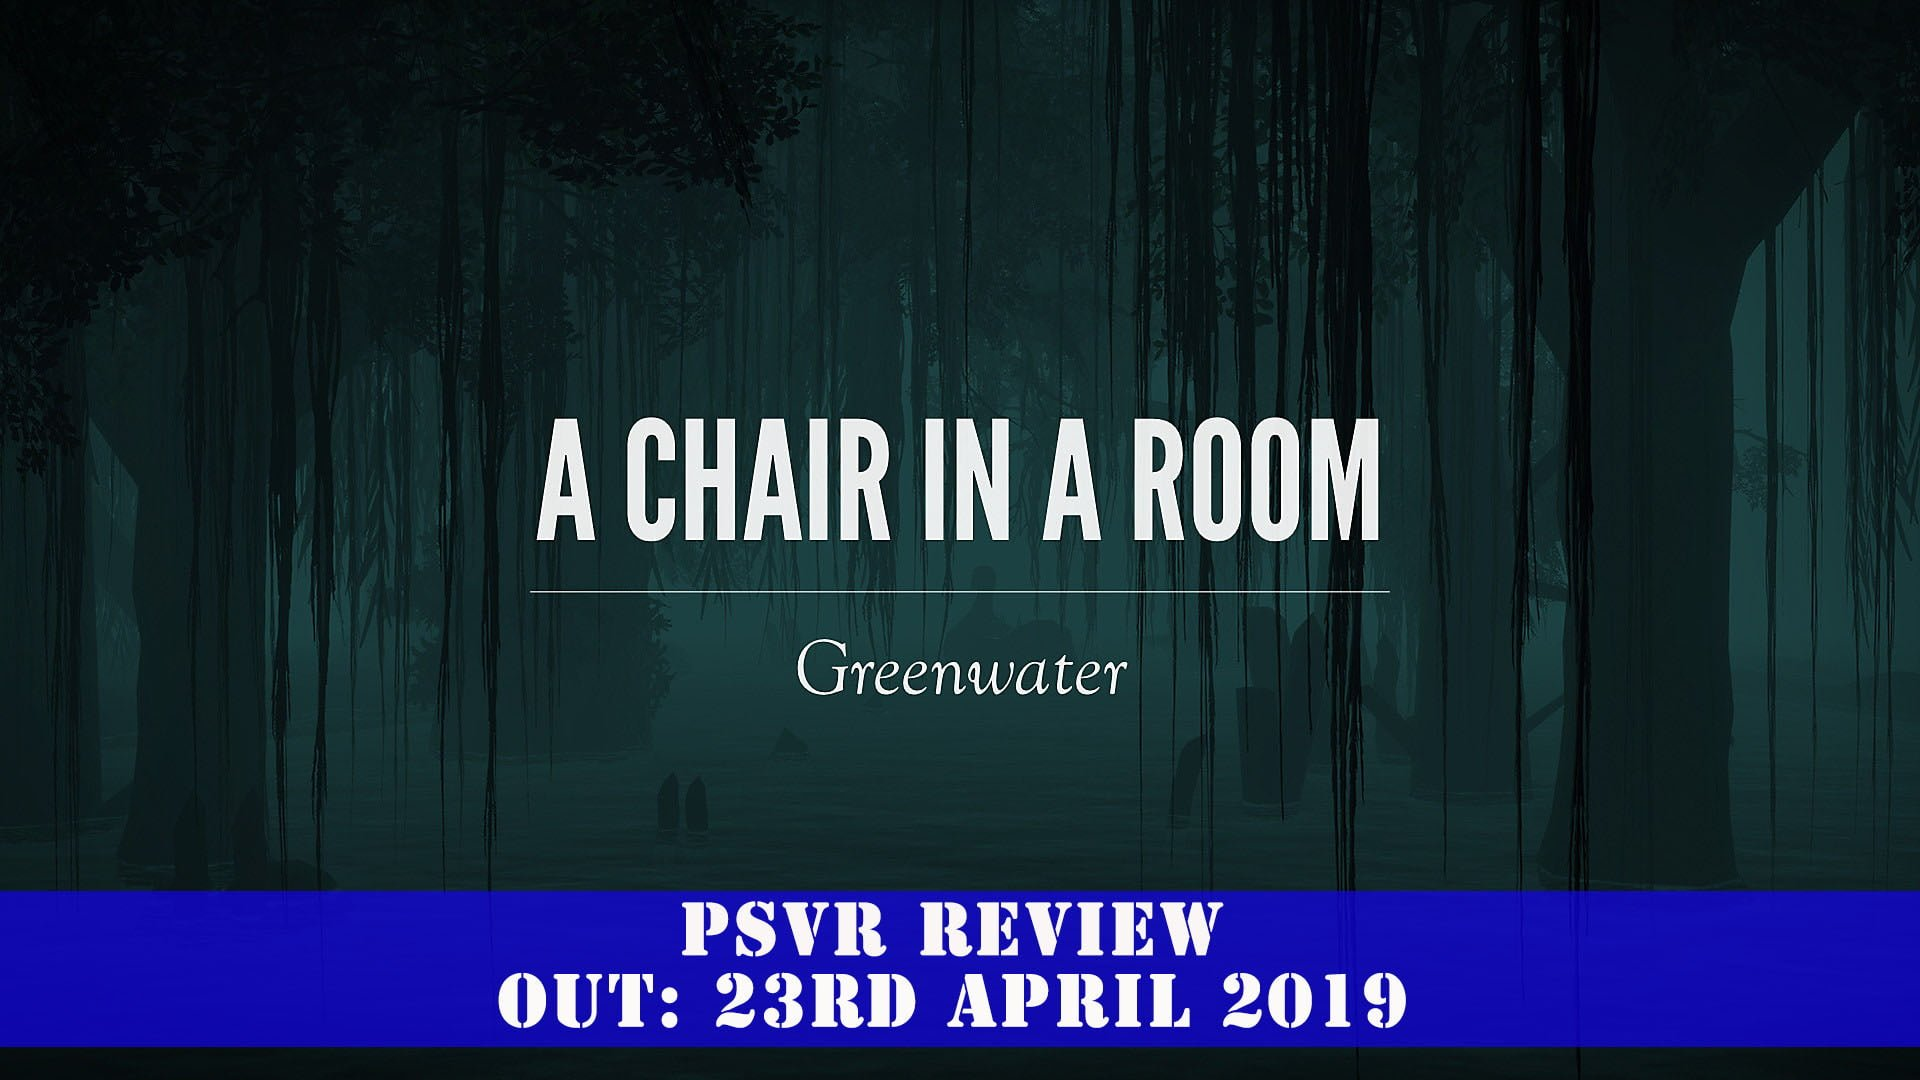 A Chair in a Room: Greenwater (PSVR) Review